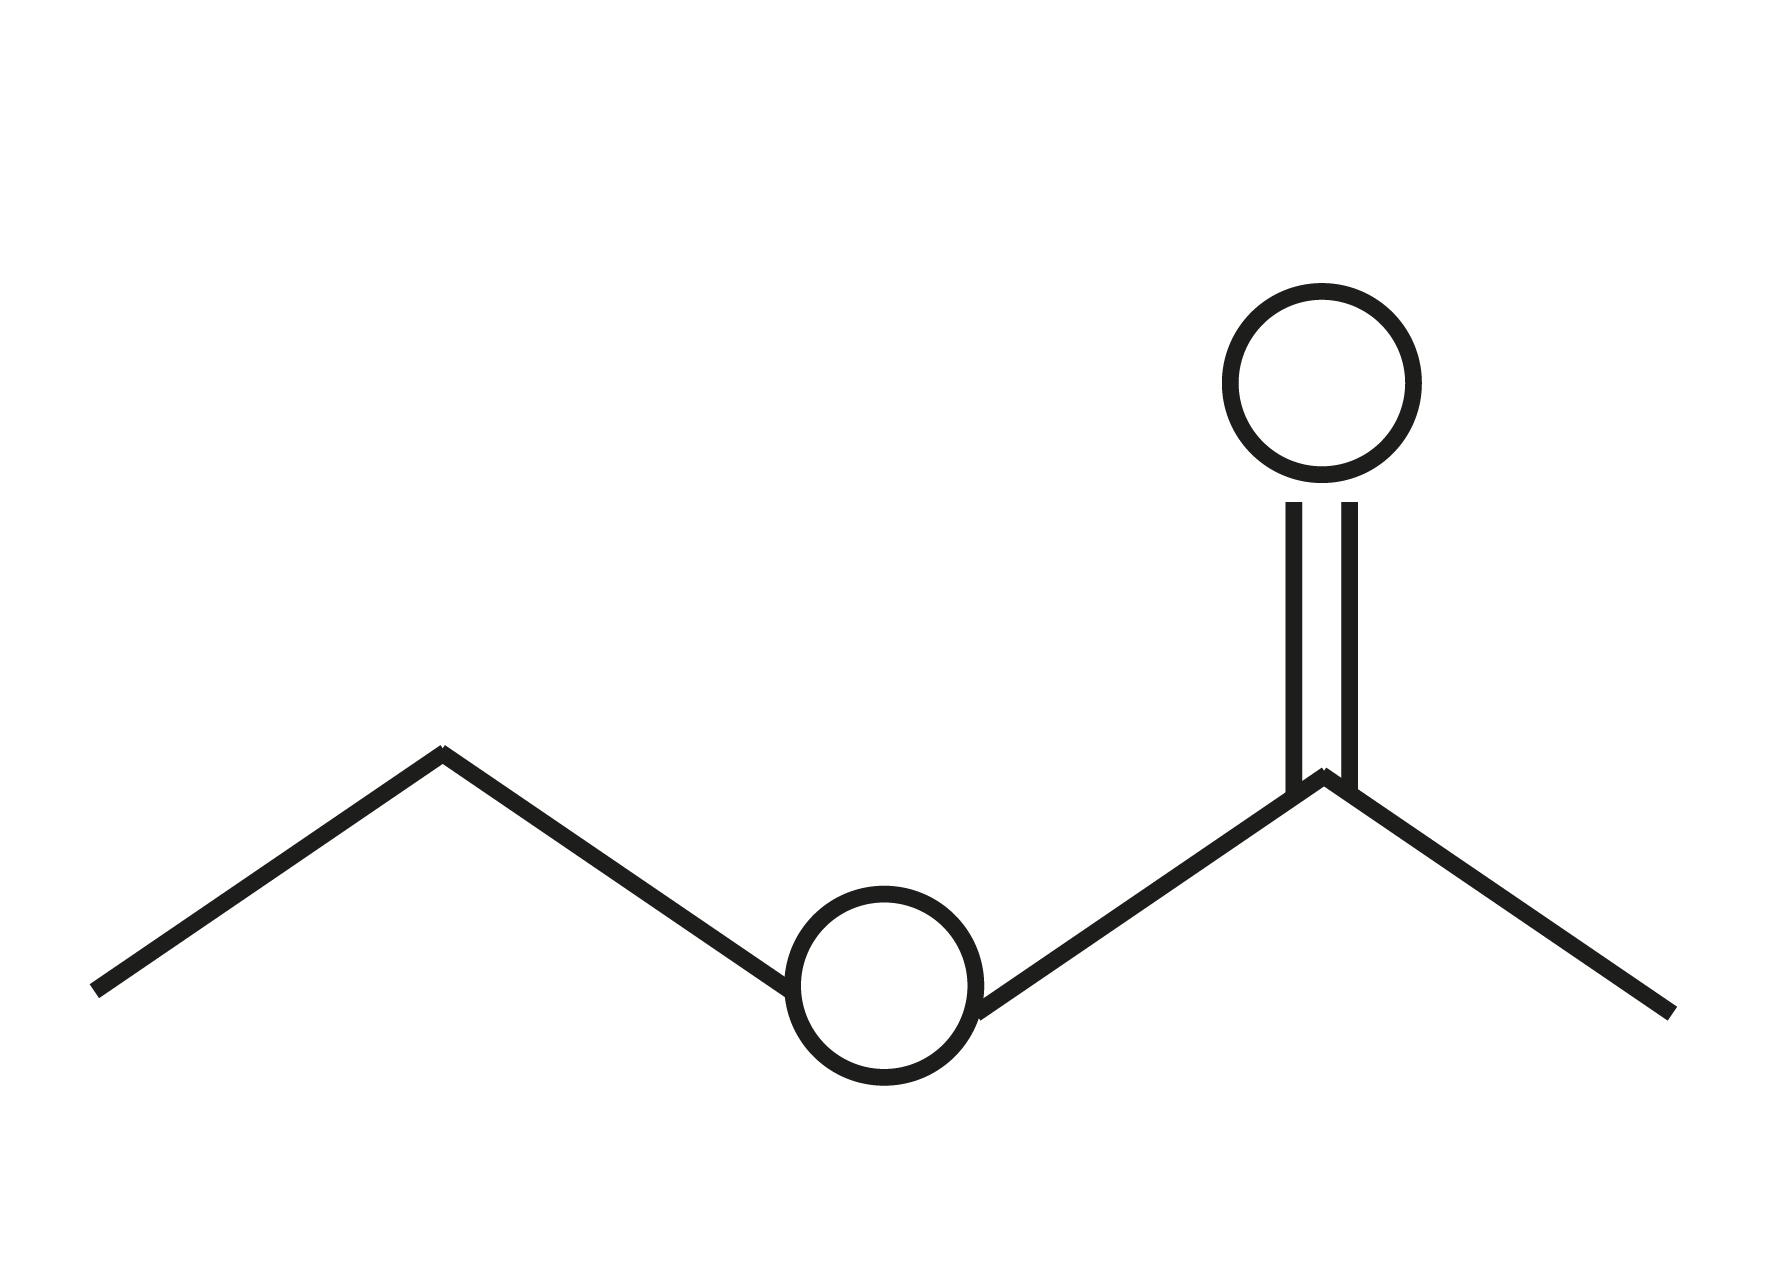 ACETATO-DE-ISOPROPILO